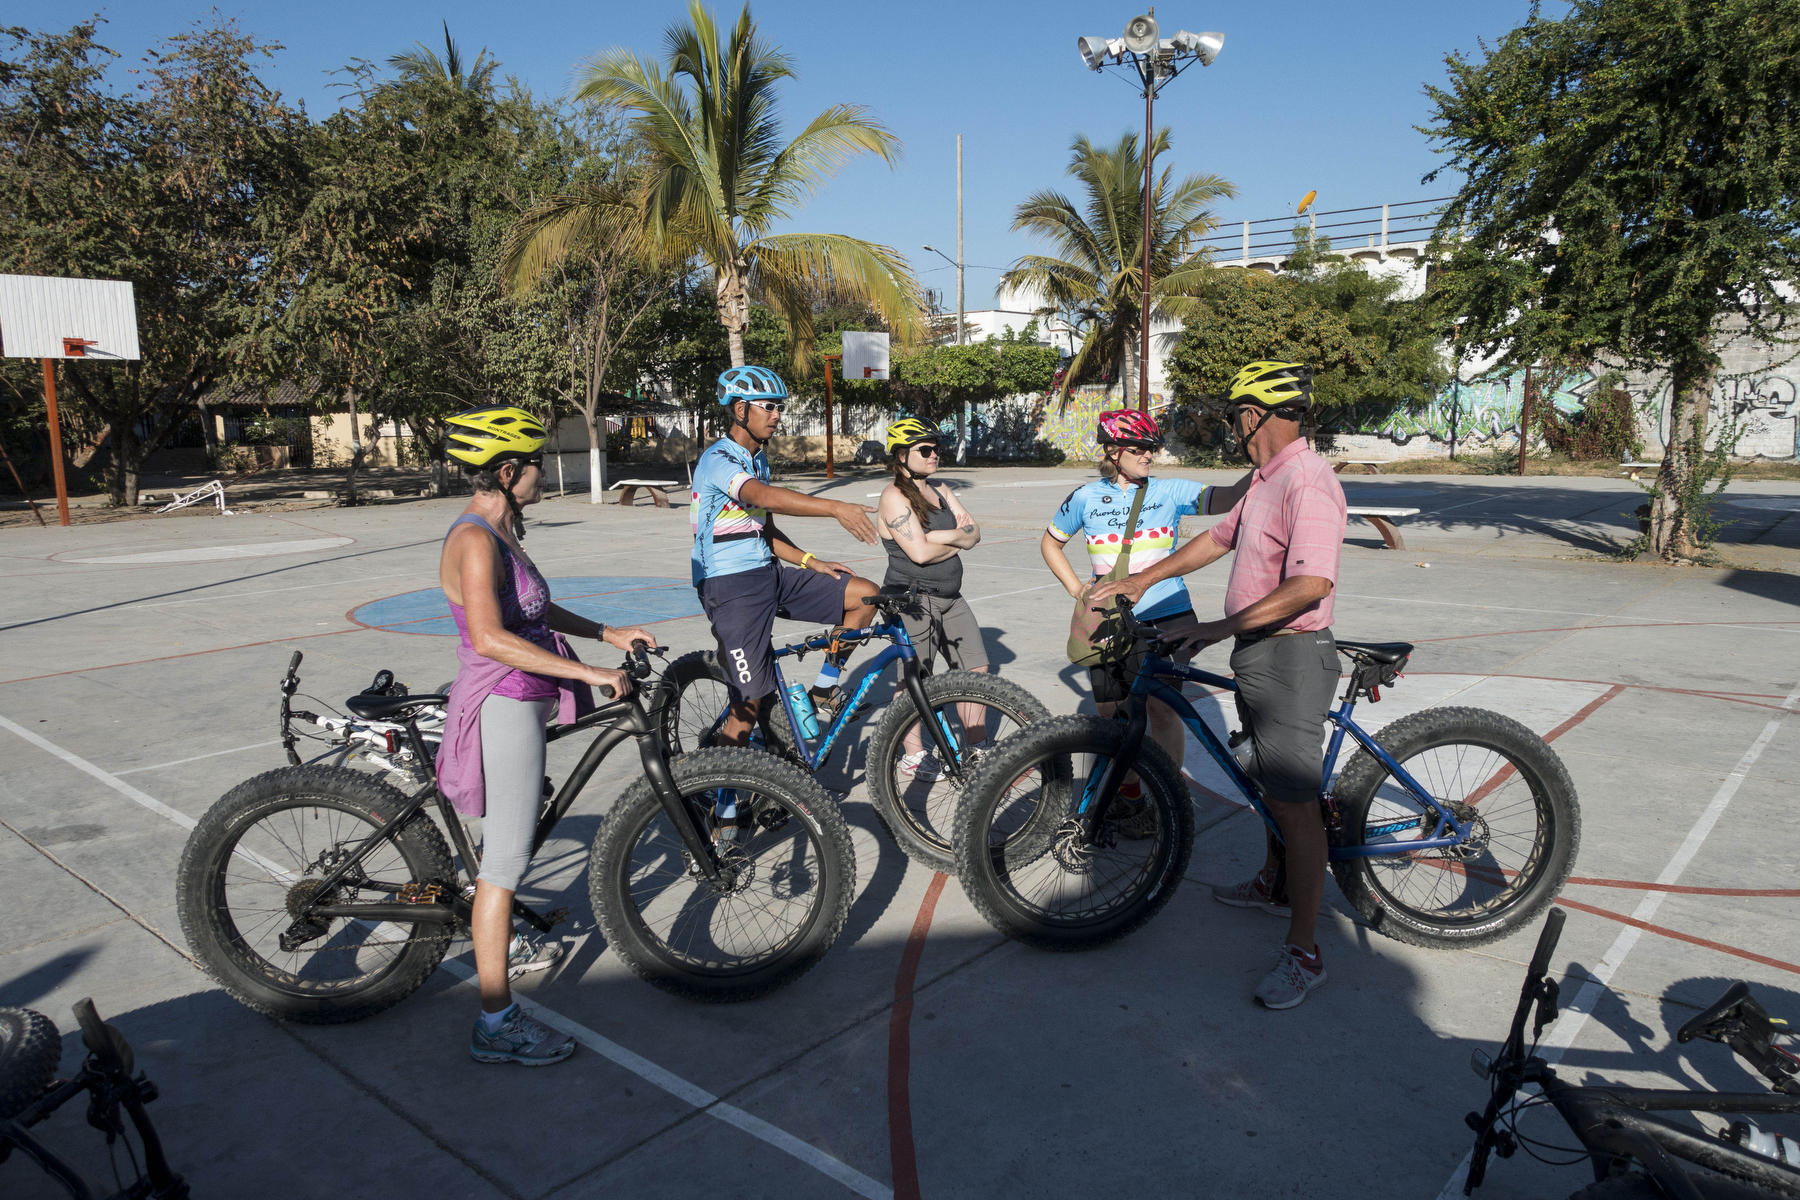 Bicyclists take a photography break  : PUERTO VALLARTA - Wall Art & Bicycle Tour : Viviane Moos |  Documentary Photographer